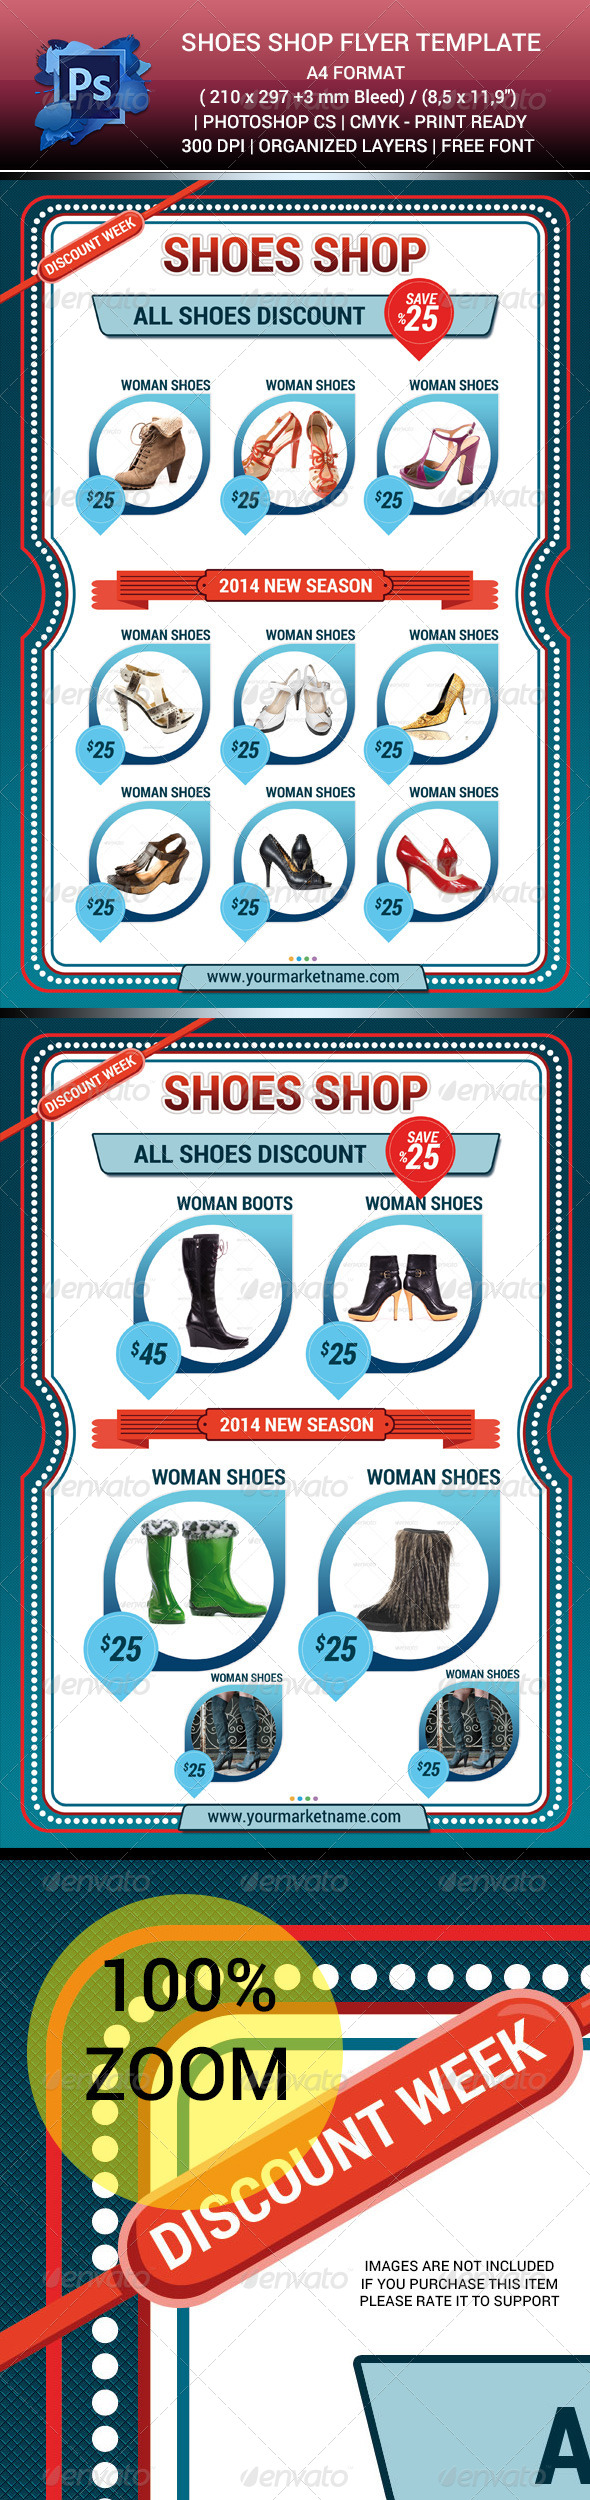 Shoes Shop Sales Flyer Template V.1 - Corporate Business Cards